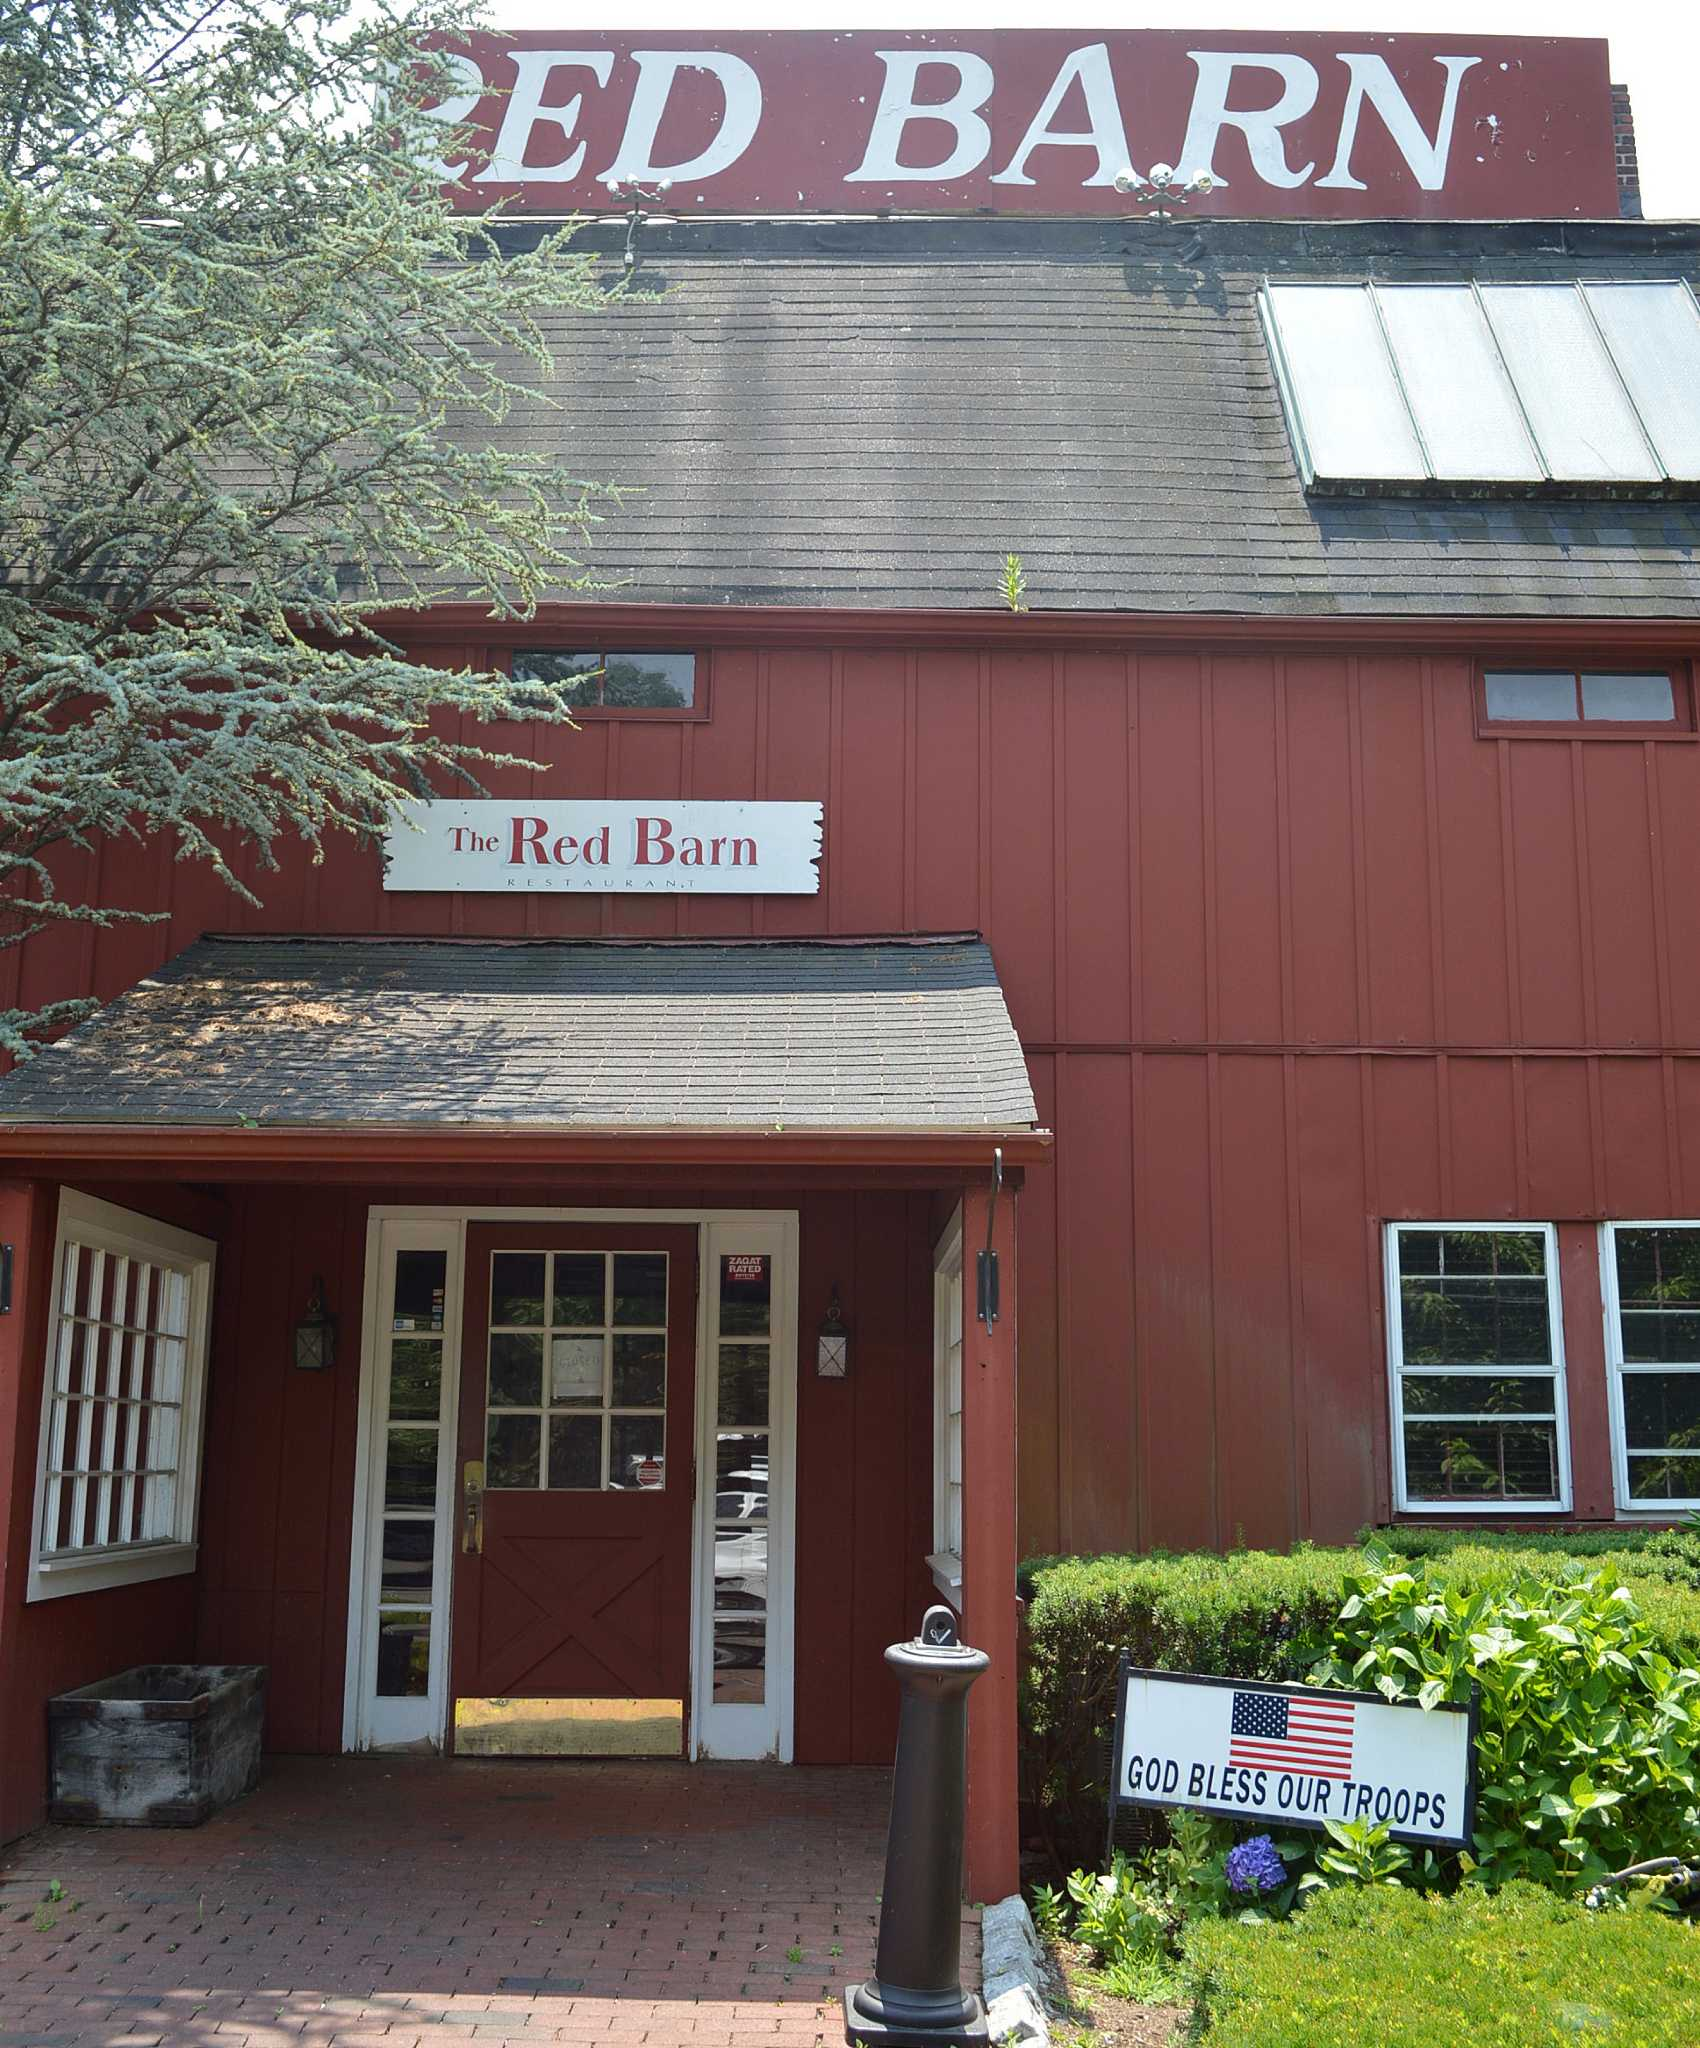 Red Barn restaurant closed after more than 50 years